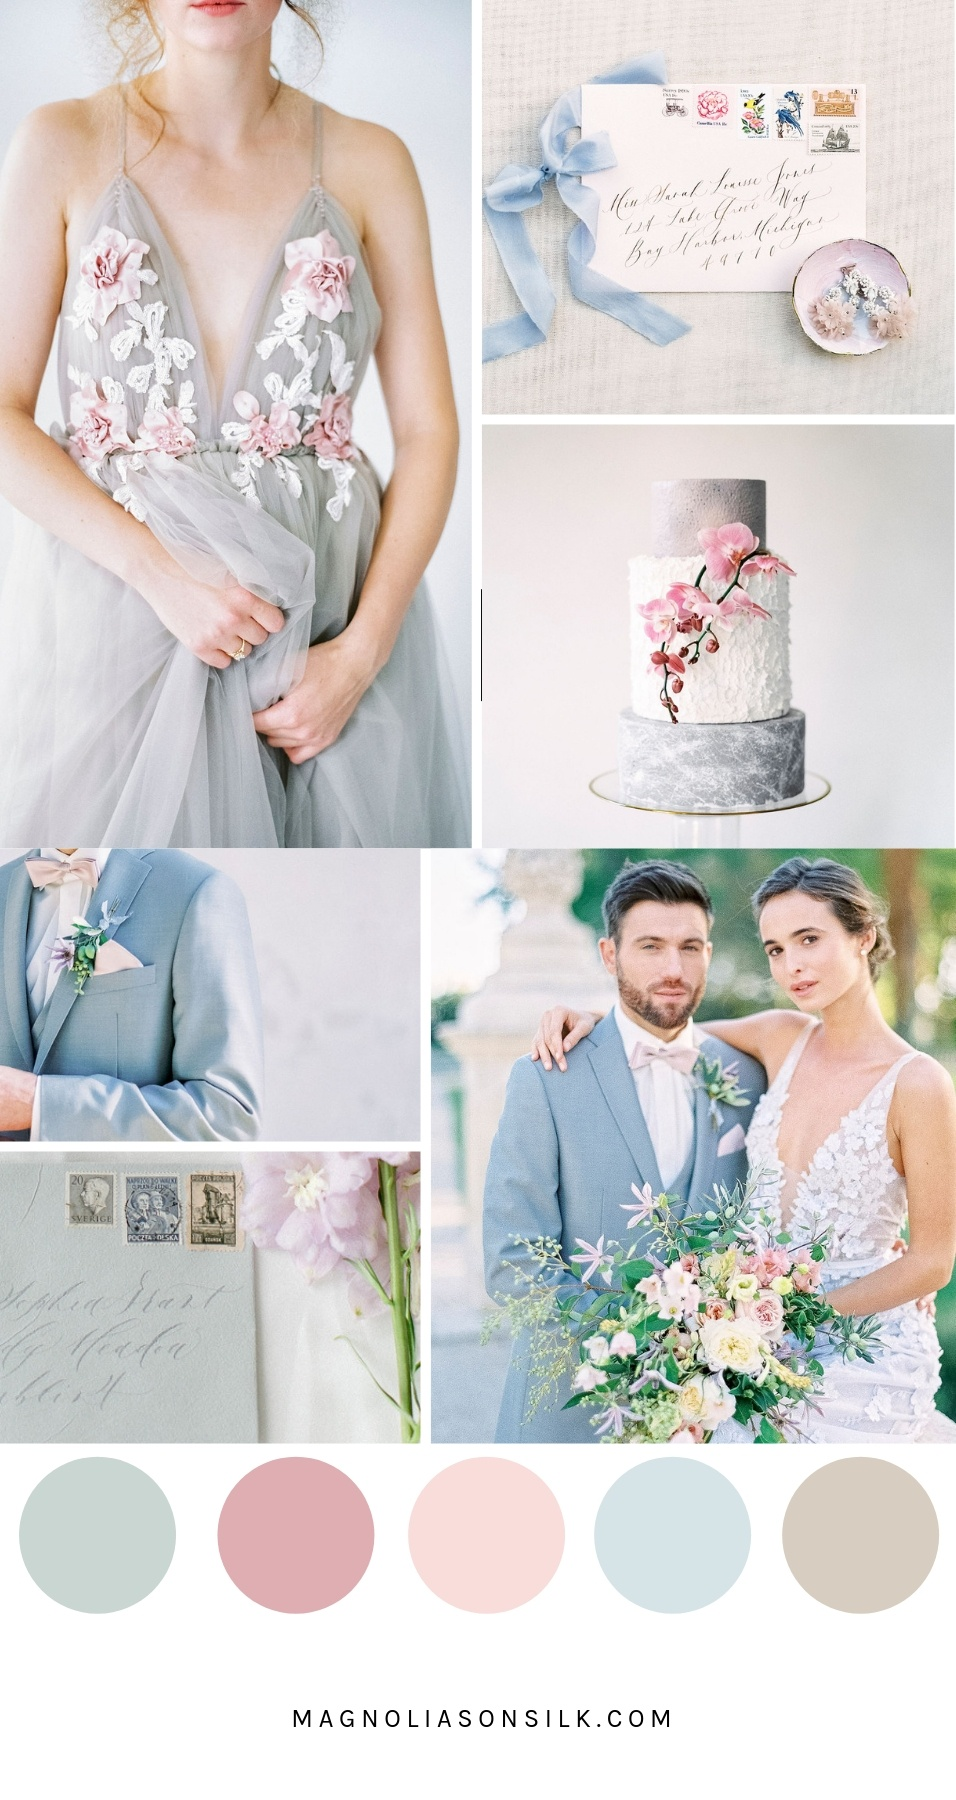 spring wedding color scheme, spring wedding color palette, pastel colors for spring wedding